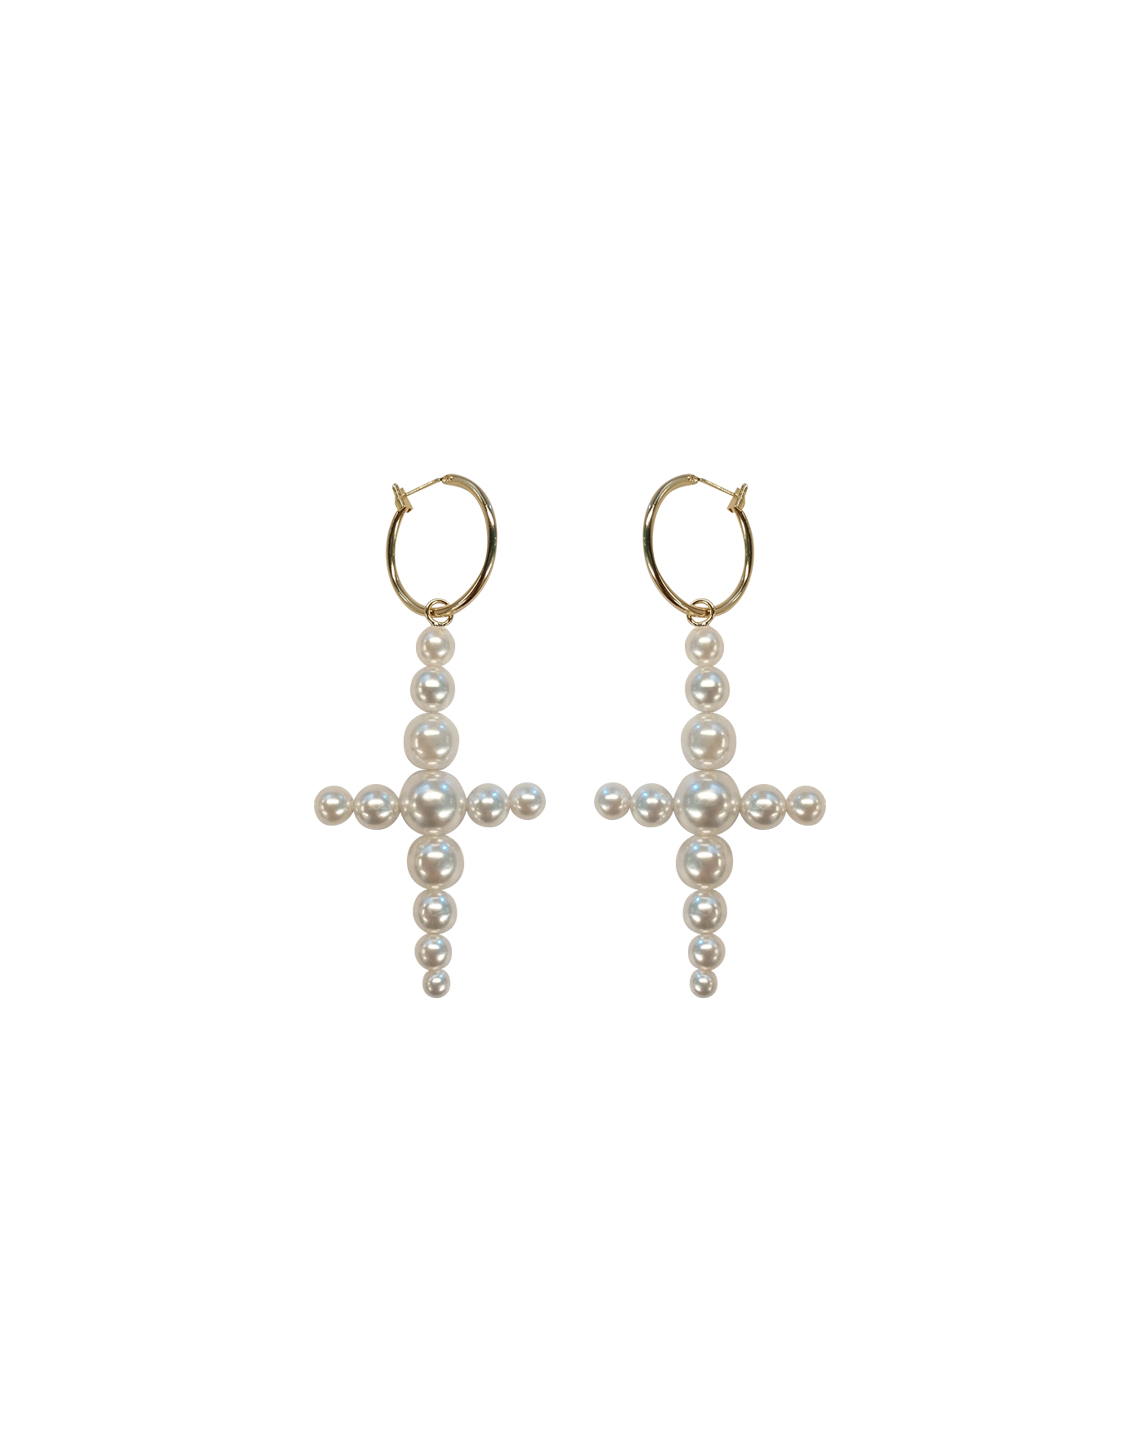 Cross Earrings by Jessica K on curated-crowd.com